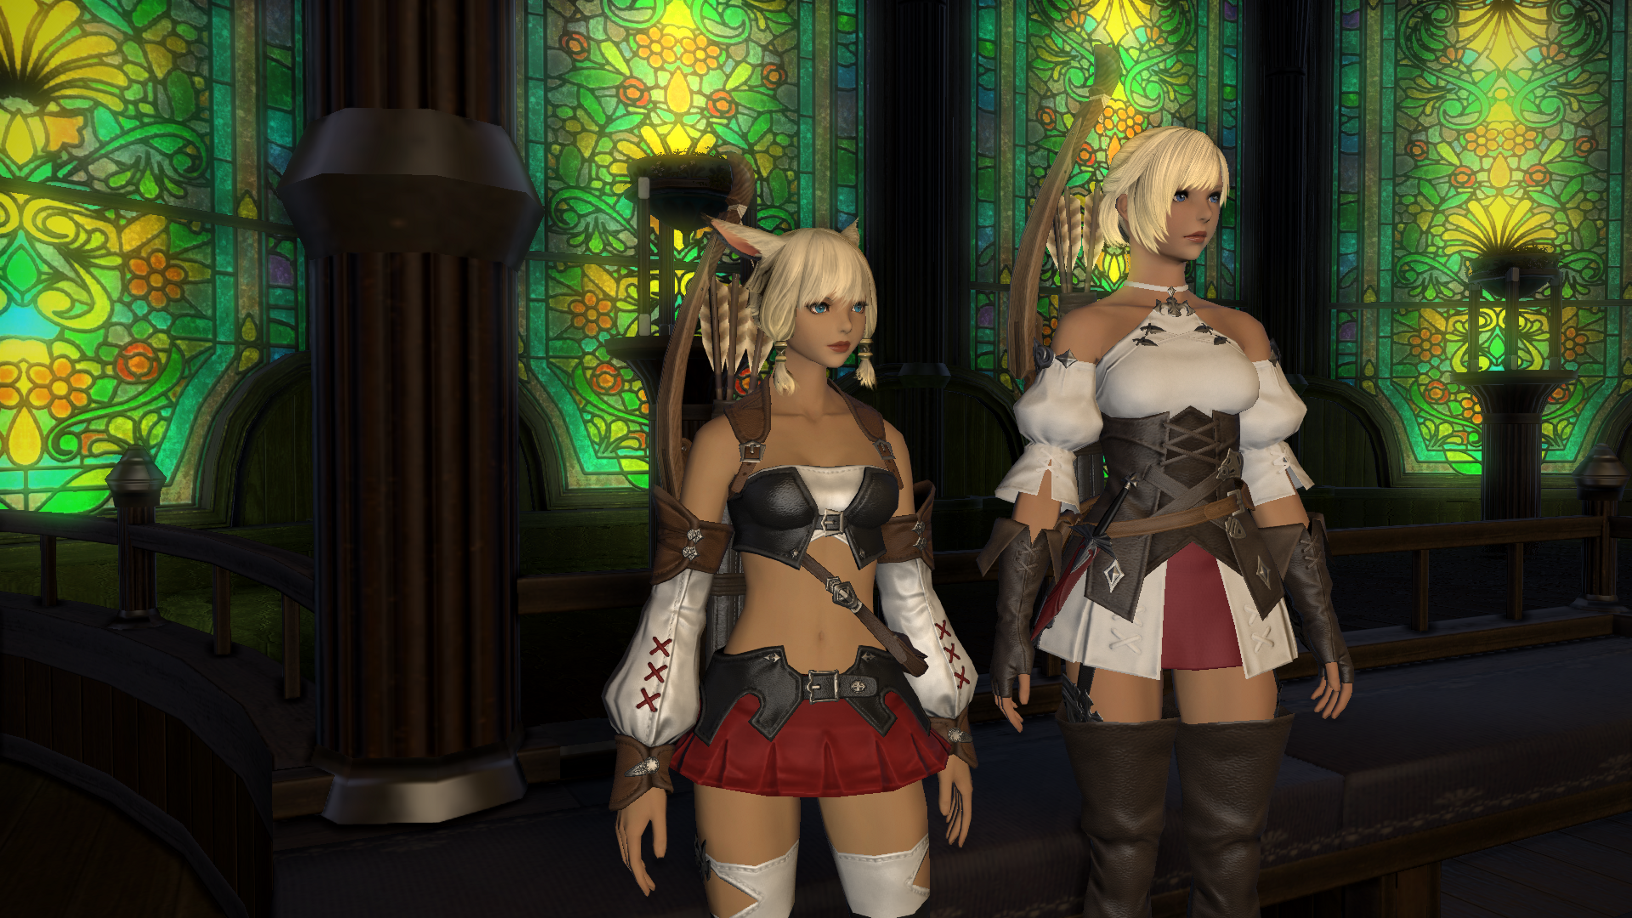 jigglyjam ffxiv limsa through tonight well screenshots lifted phase beta